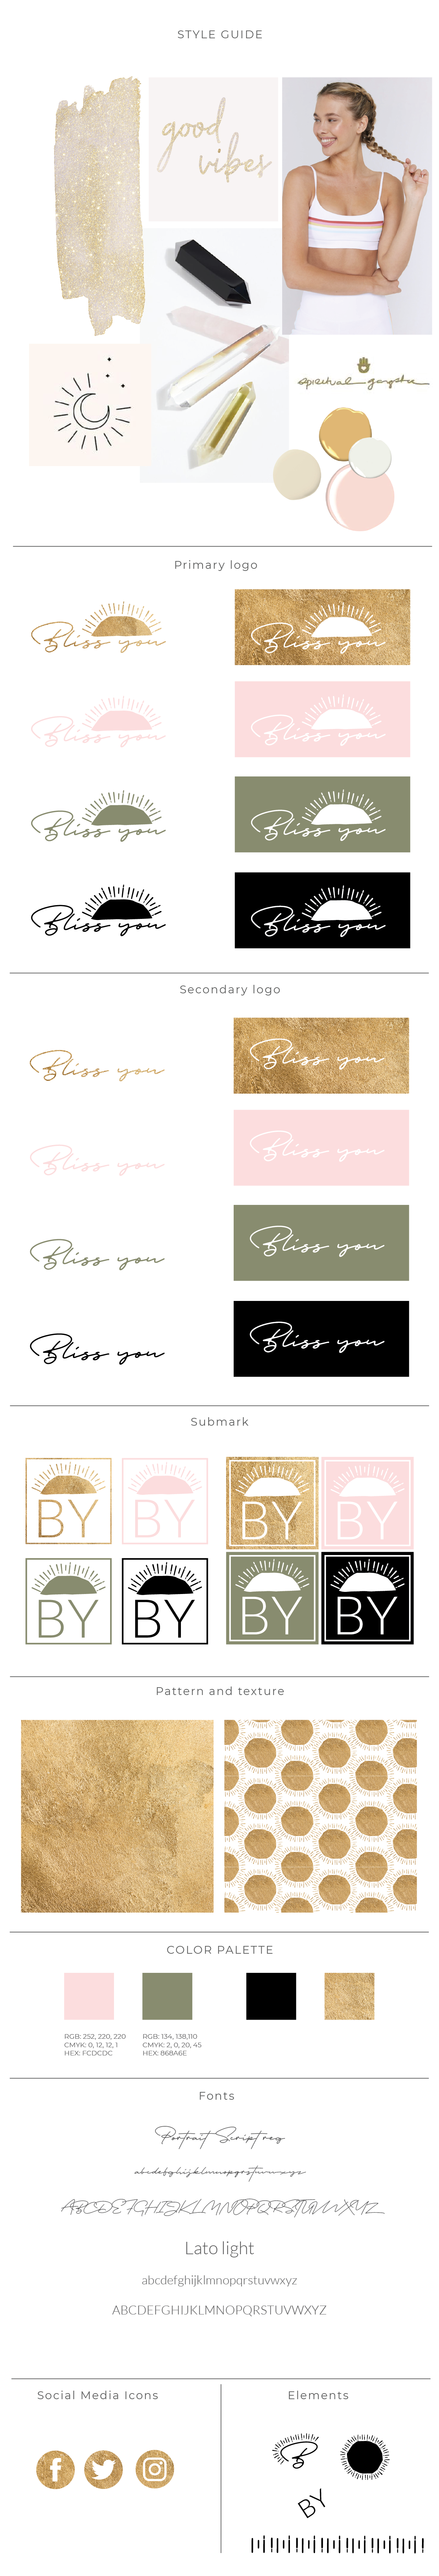 Bliss you style guide-01.png